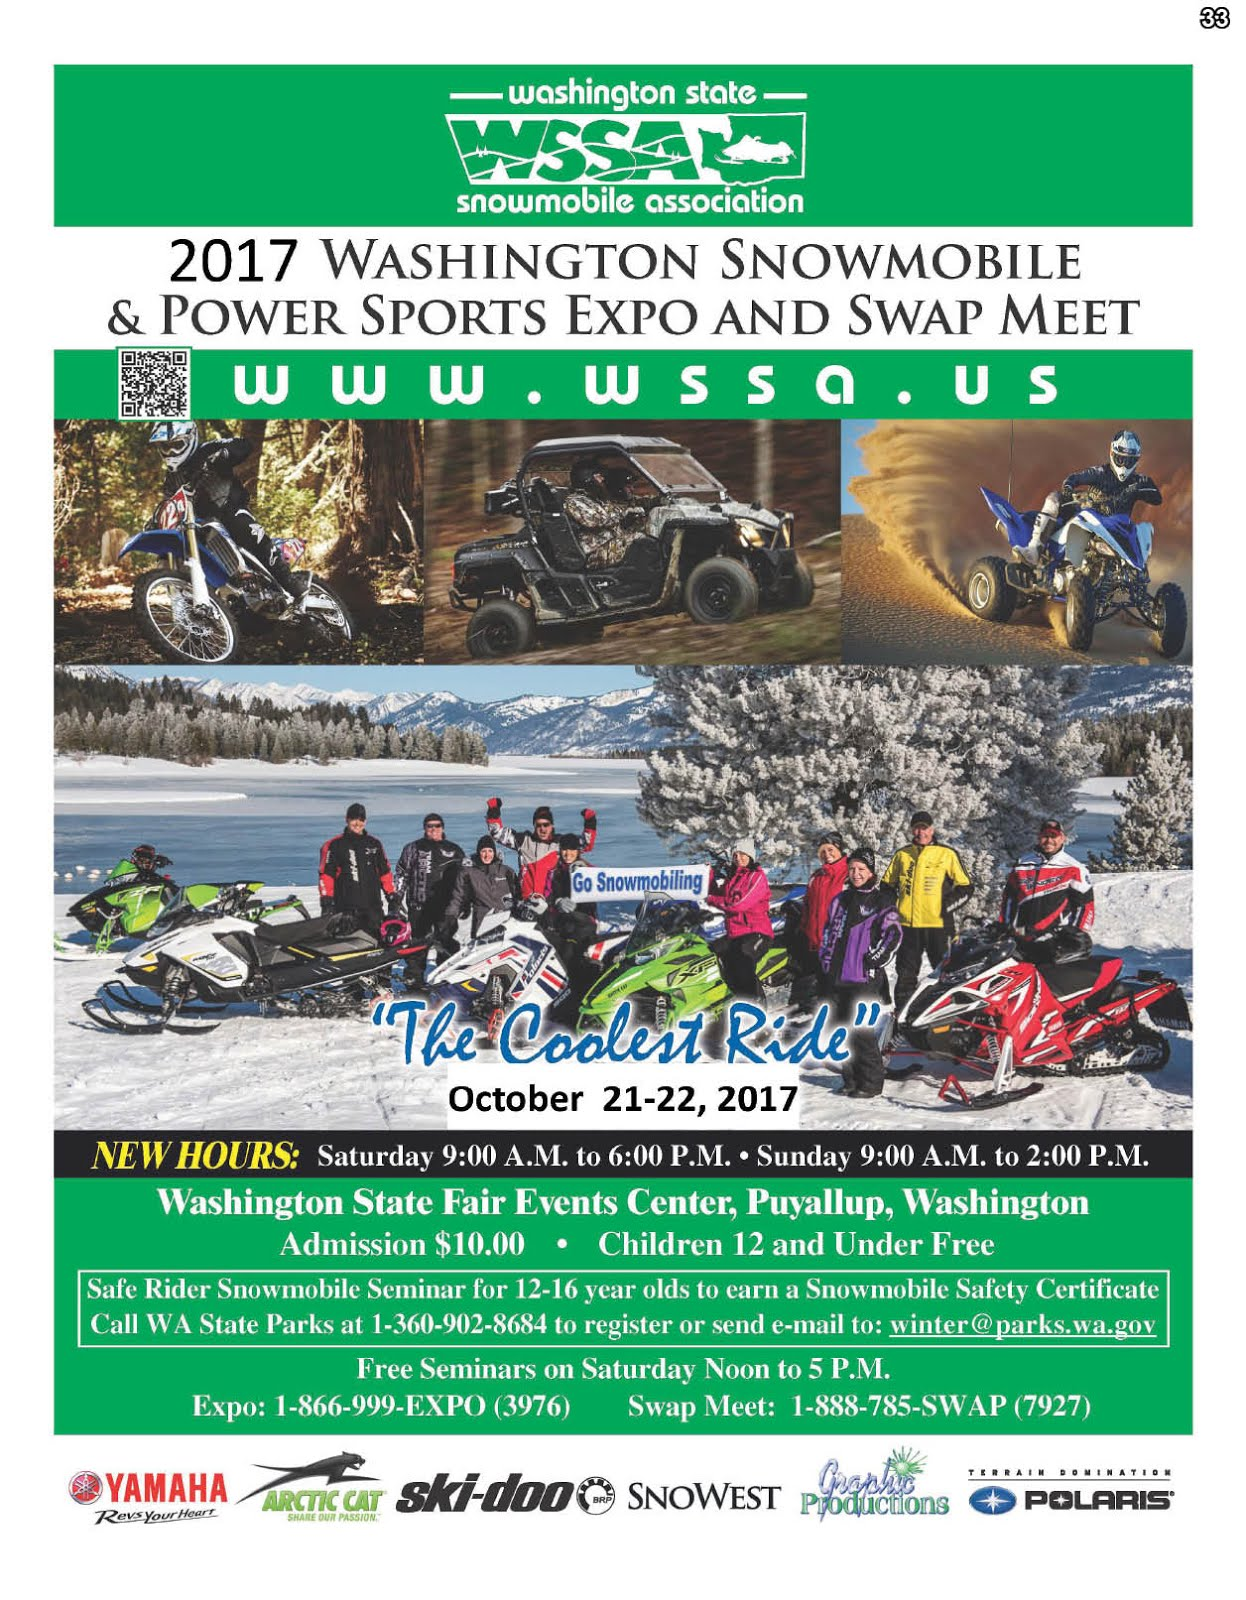 Join NW Road & Marine Magazine @ 2017 Washington Snowmobile & Power Sports Expo/Swap Meet!!